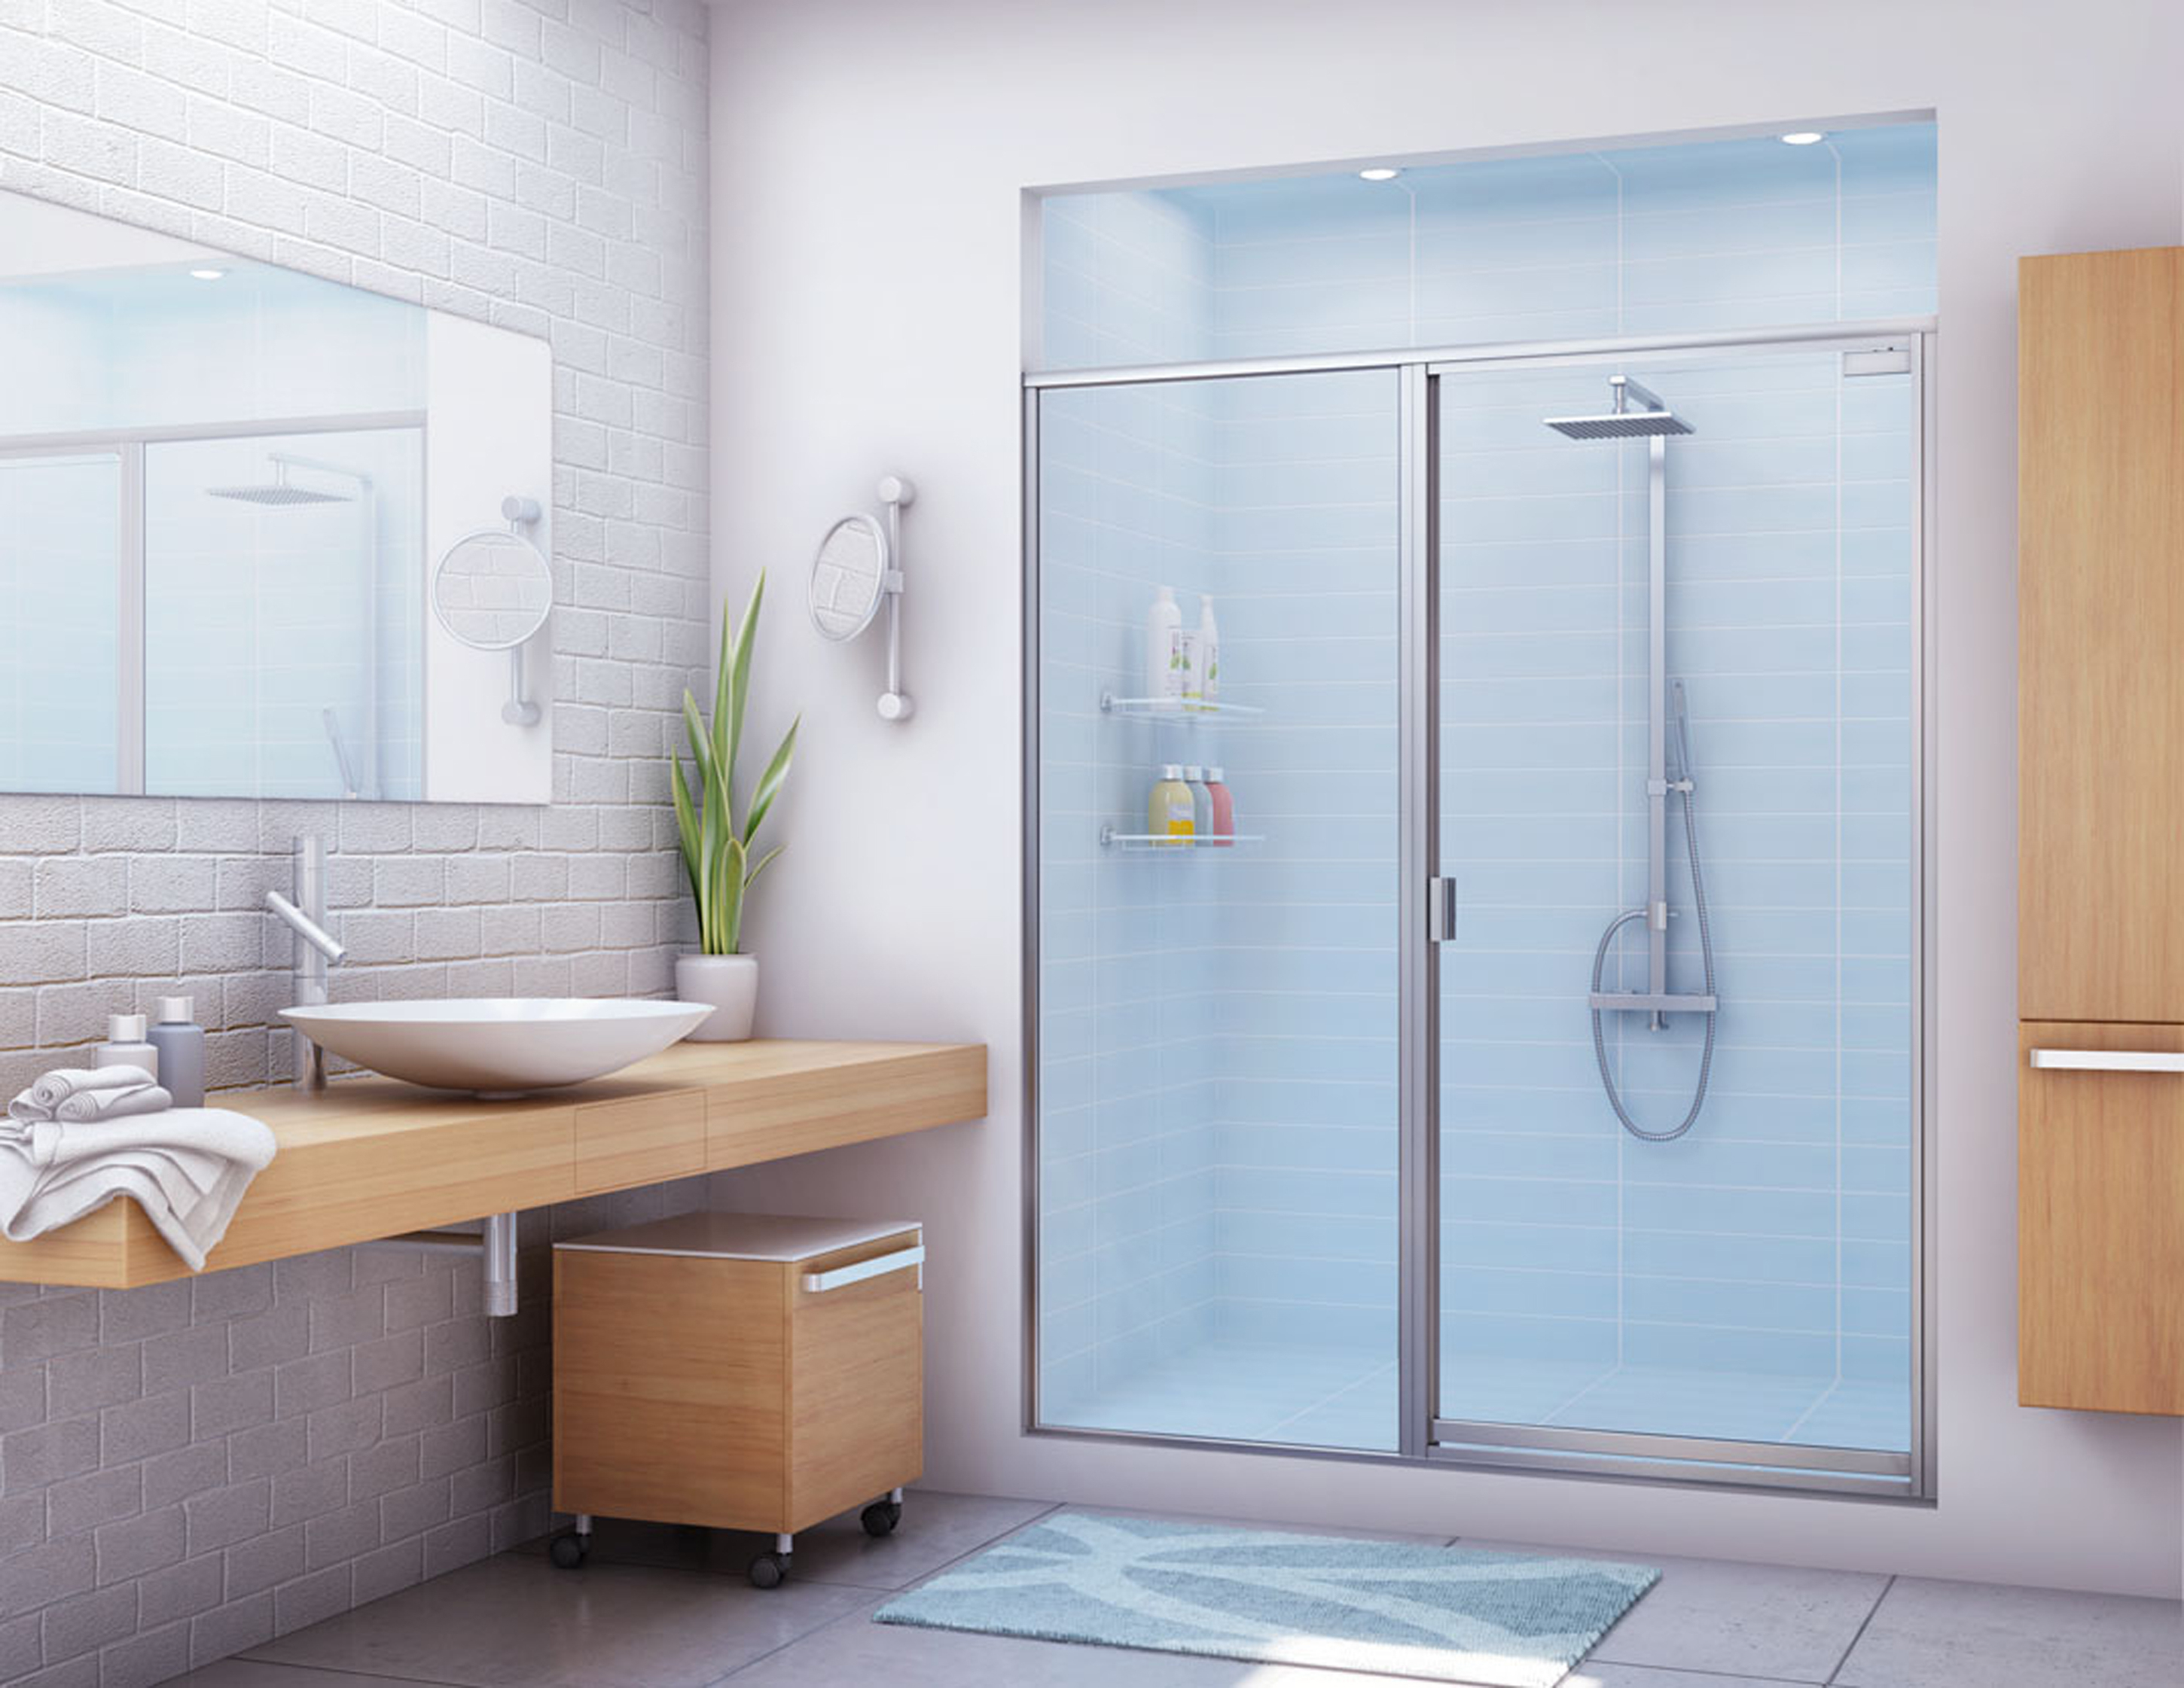 Sweet Glass Shower Door Design Bathroom Idea With White Shiwer Wall Open Shelves Wit Bottles And White Sink Marvelous Glass Shower Door Design Bathroom Ideas (View 7 of 23)